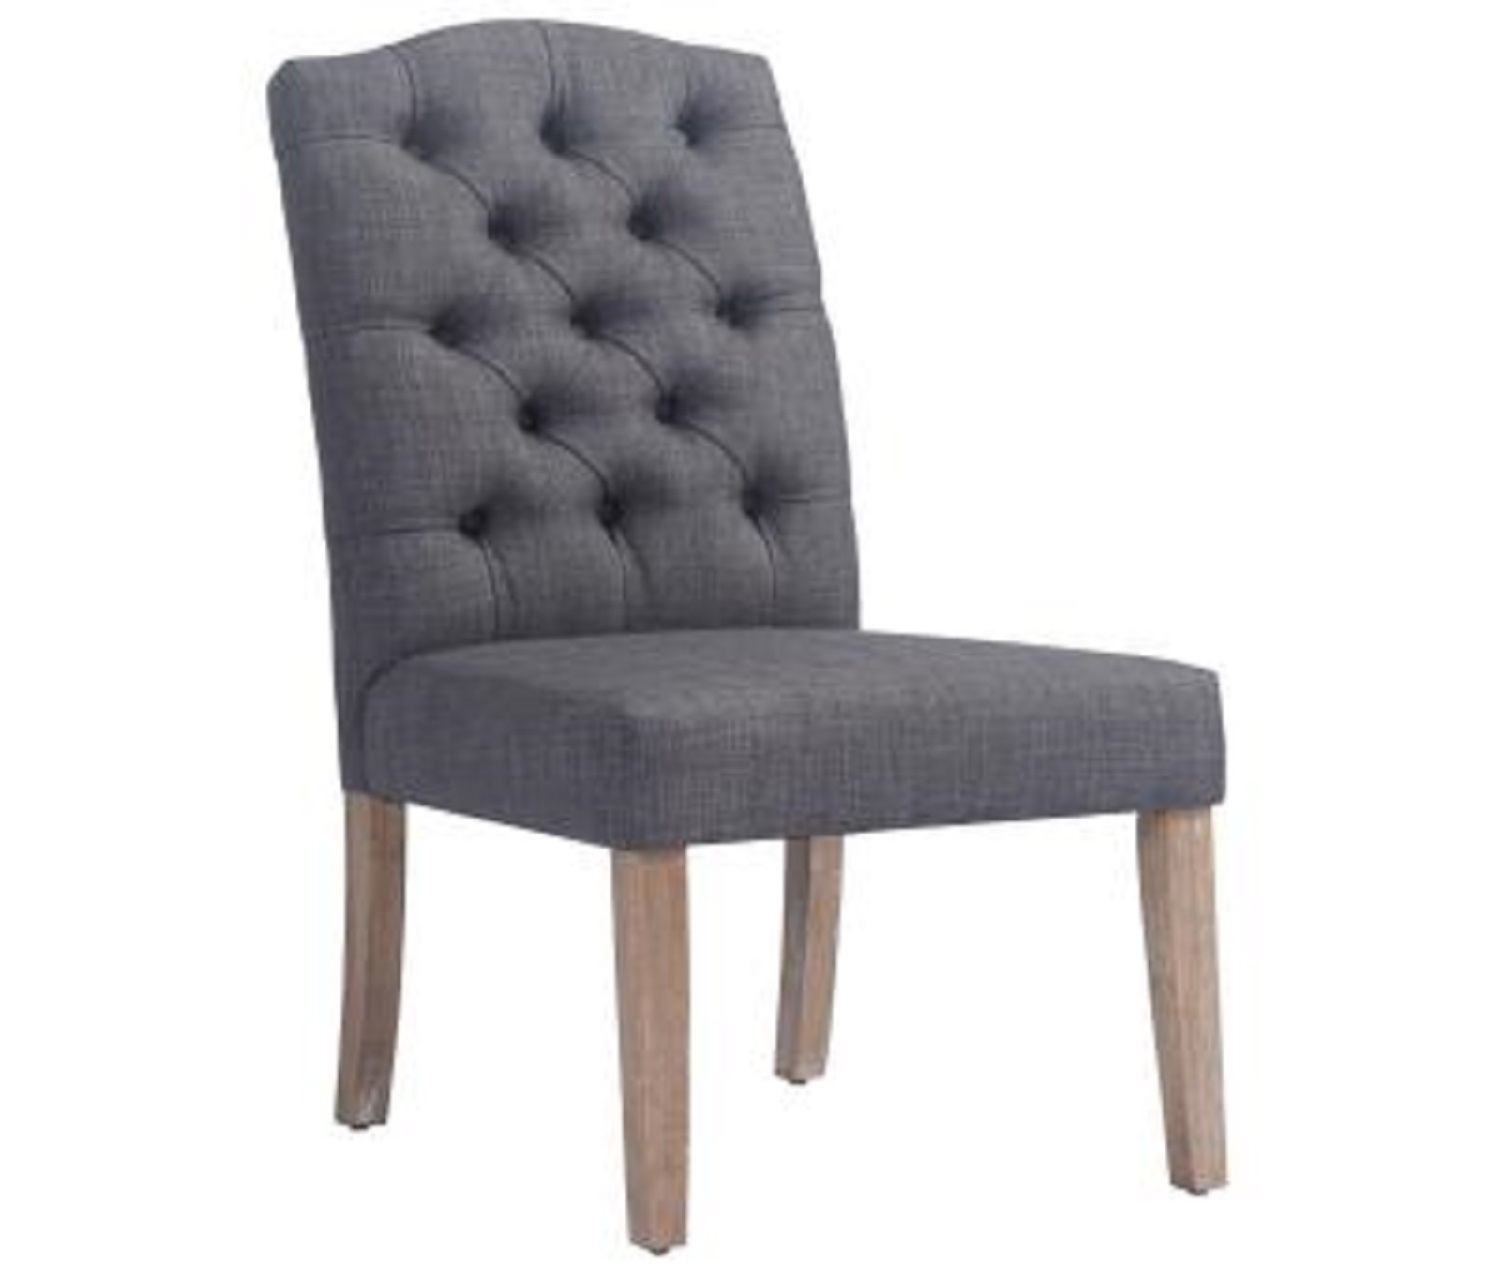 LUCIAN-SIDE CHAIR-GREY, 841173026387, Dining Chairs, LUCIAN-SIDE CHAIR-GREY from Dropship by Midha Furniture serving Brampton, Mississauga, Etobicoke, Toronto, Scraborough, Caledon, Cambridge, Oakville, Markham, Ajax, Pickering, Oshawa, Richmondhill, Kitchener, Hamilton, Cambridge, Waterloo and GTA area